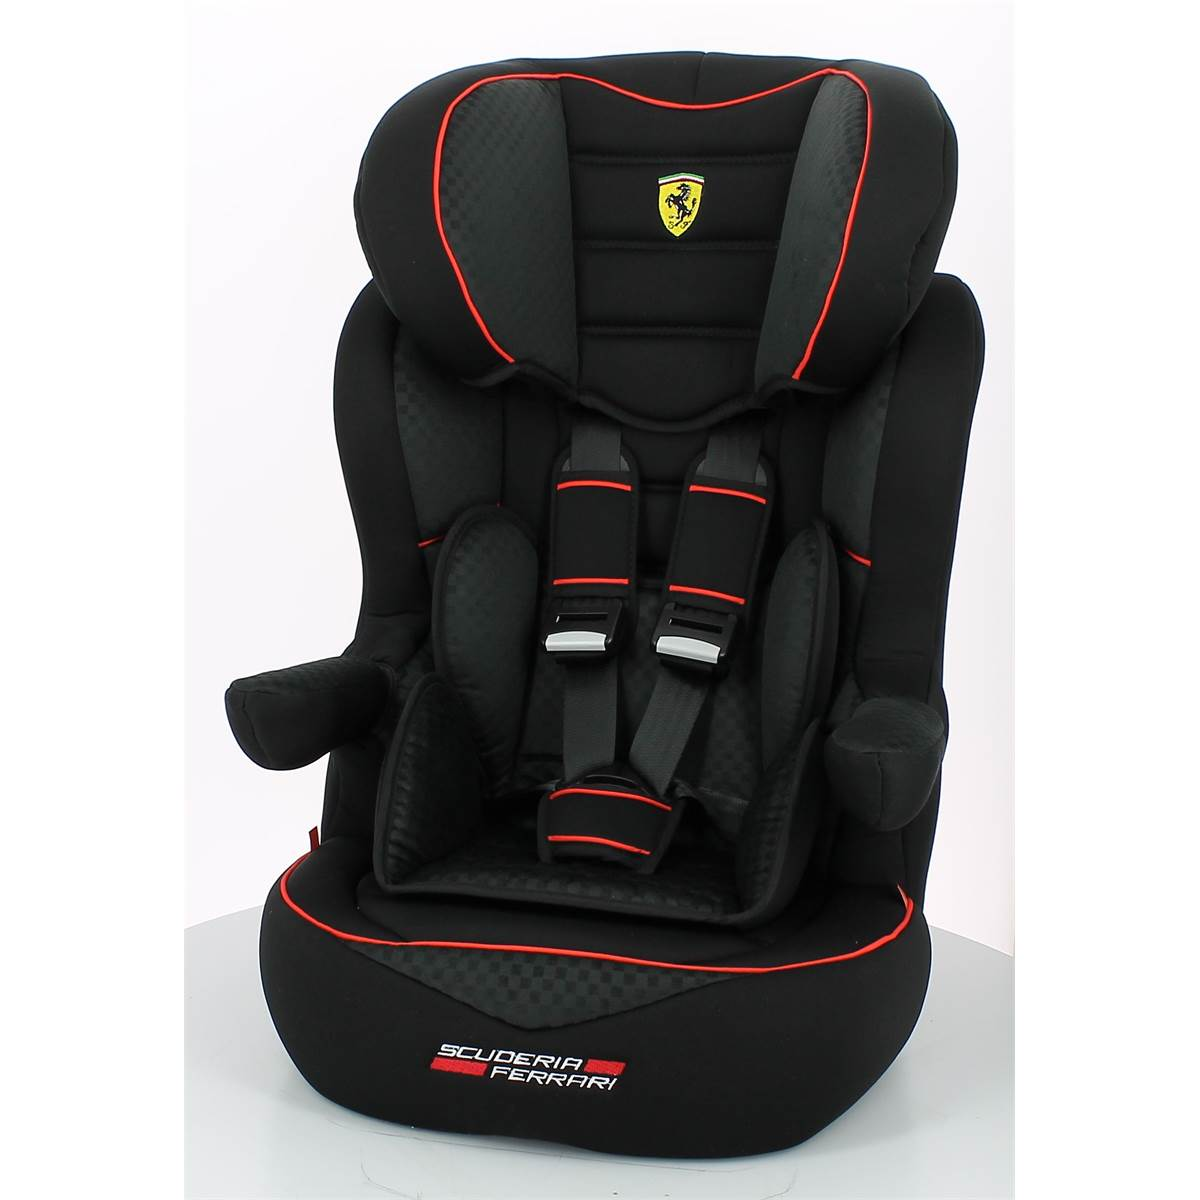 rehausseur i max isofix ferrari groupe 1 2 3. Black Bedroom Furniture Sets. Home Design Ideas